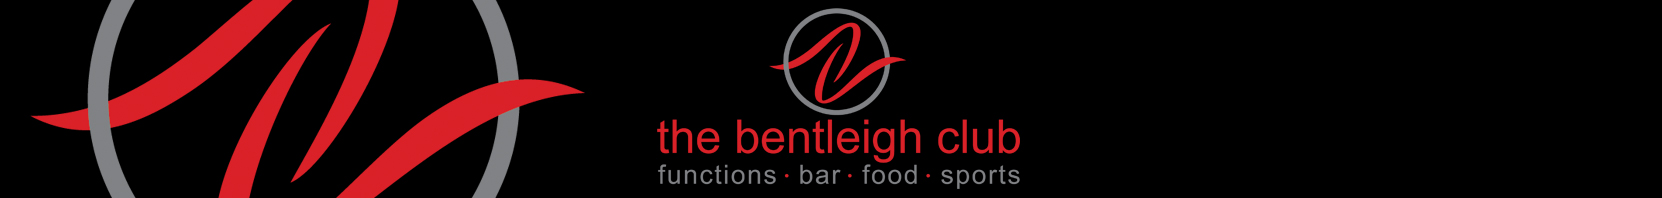 The Bentleigh Club is a bayside venue open to members and guests for function bookings, outdoor weddings, wedding receptions, engagement parties, gaming venue, corporate functions and events, bistro, fine dining restaurant in Bentleigh, Melbourne